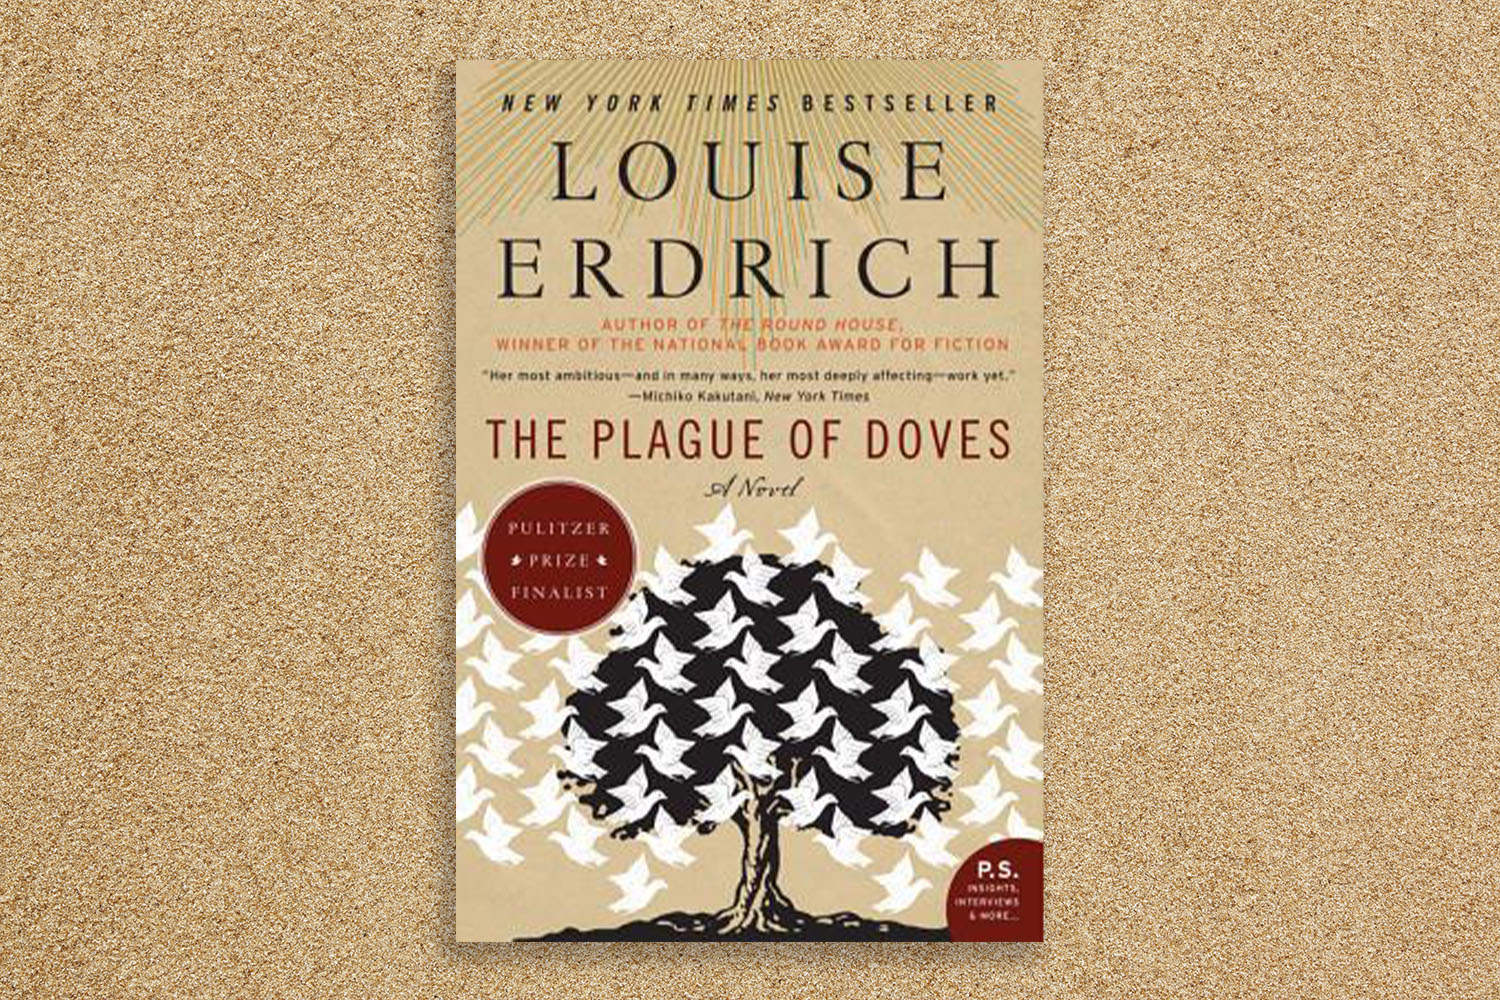 The Plague of Doves cover.